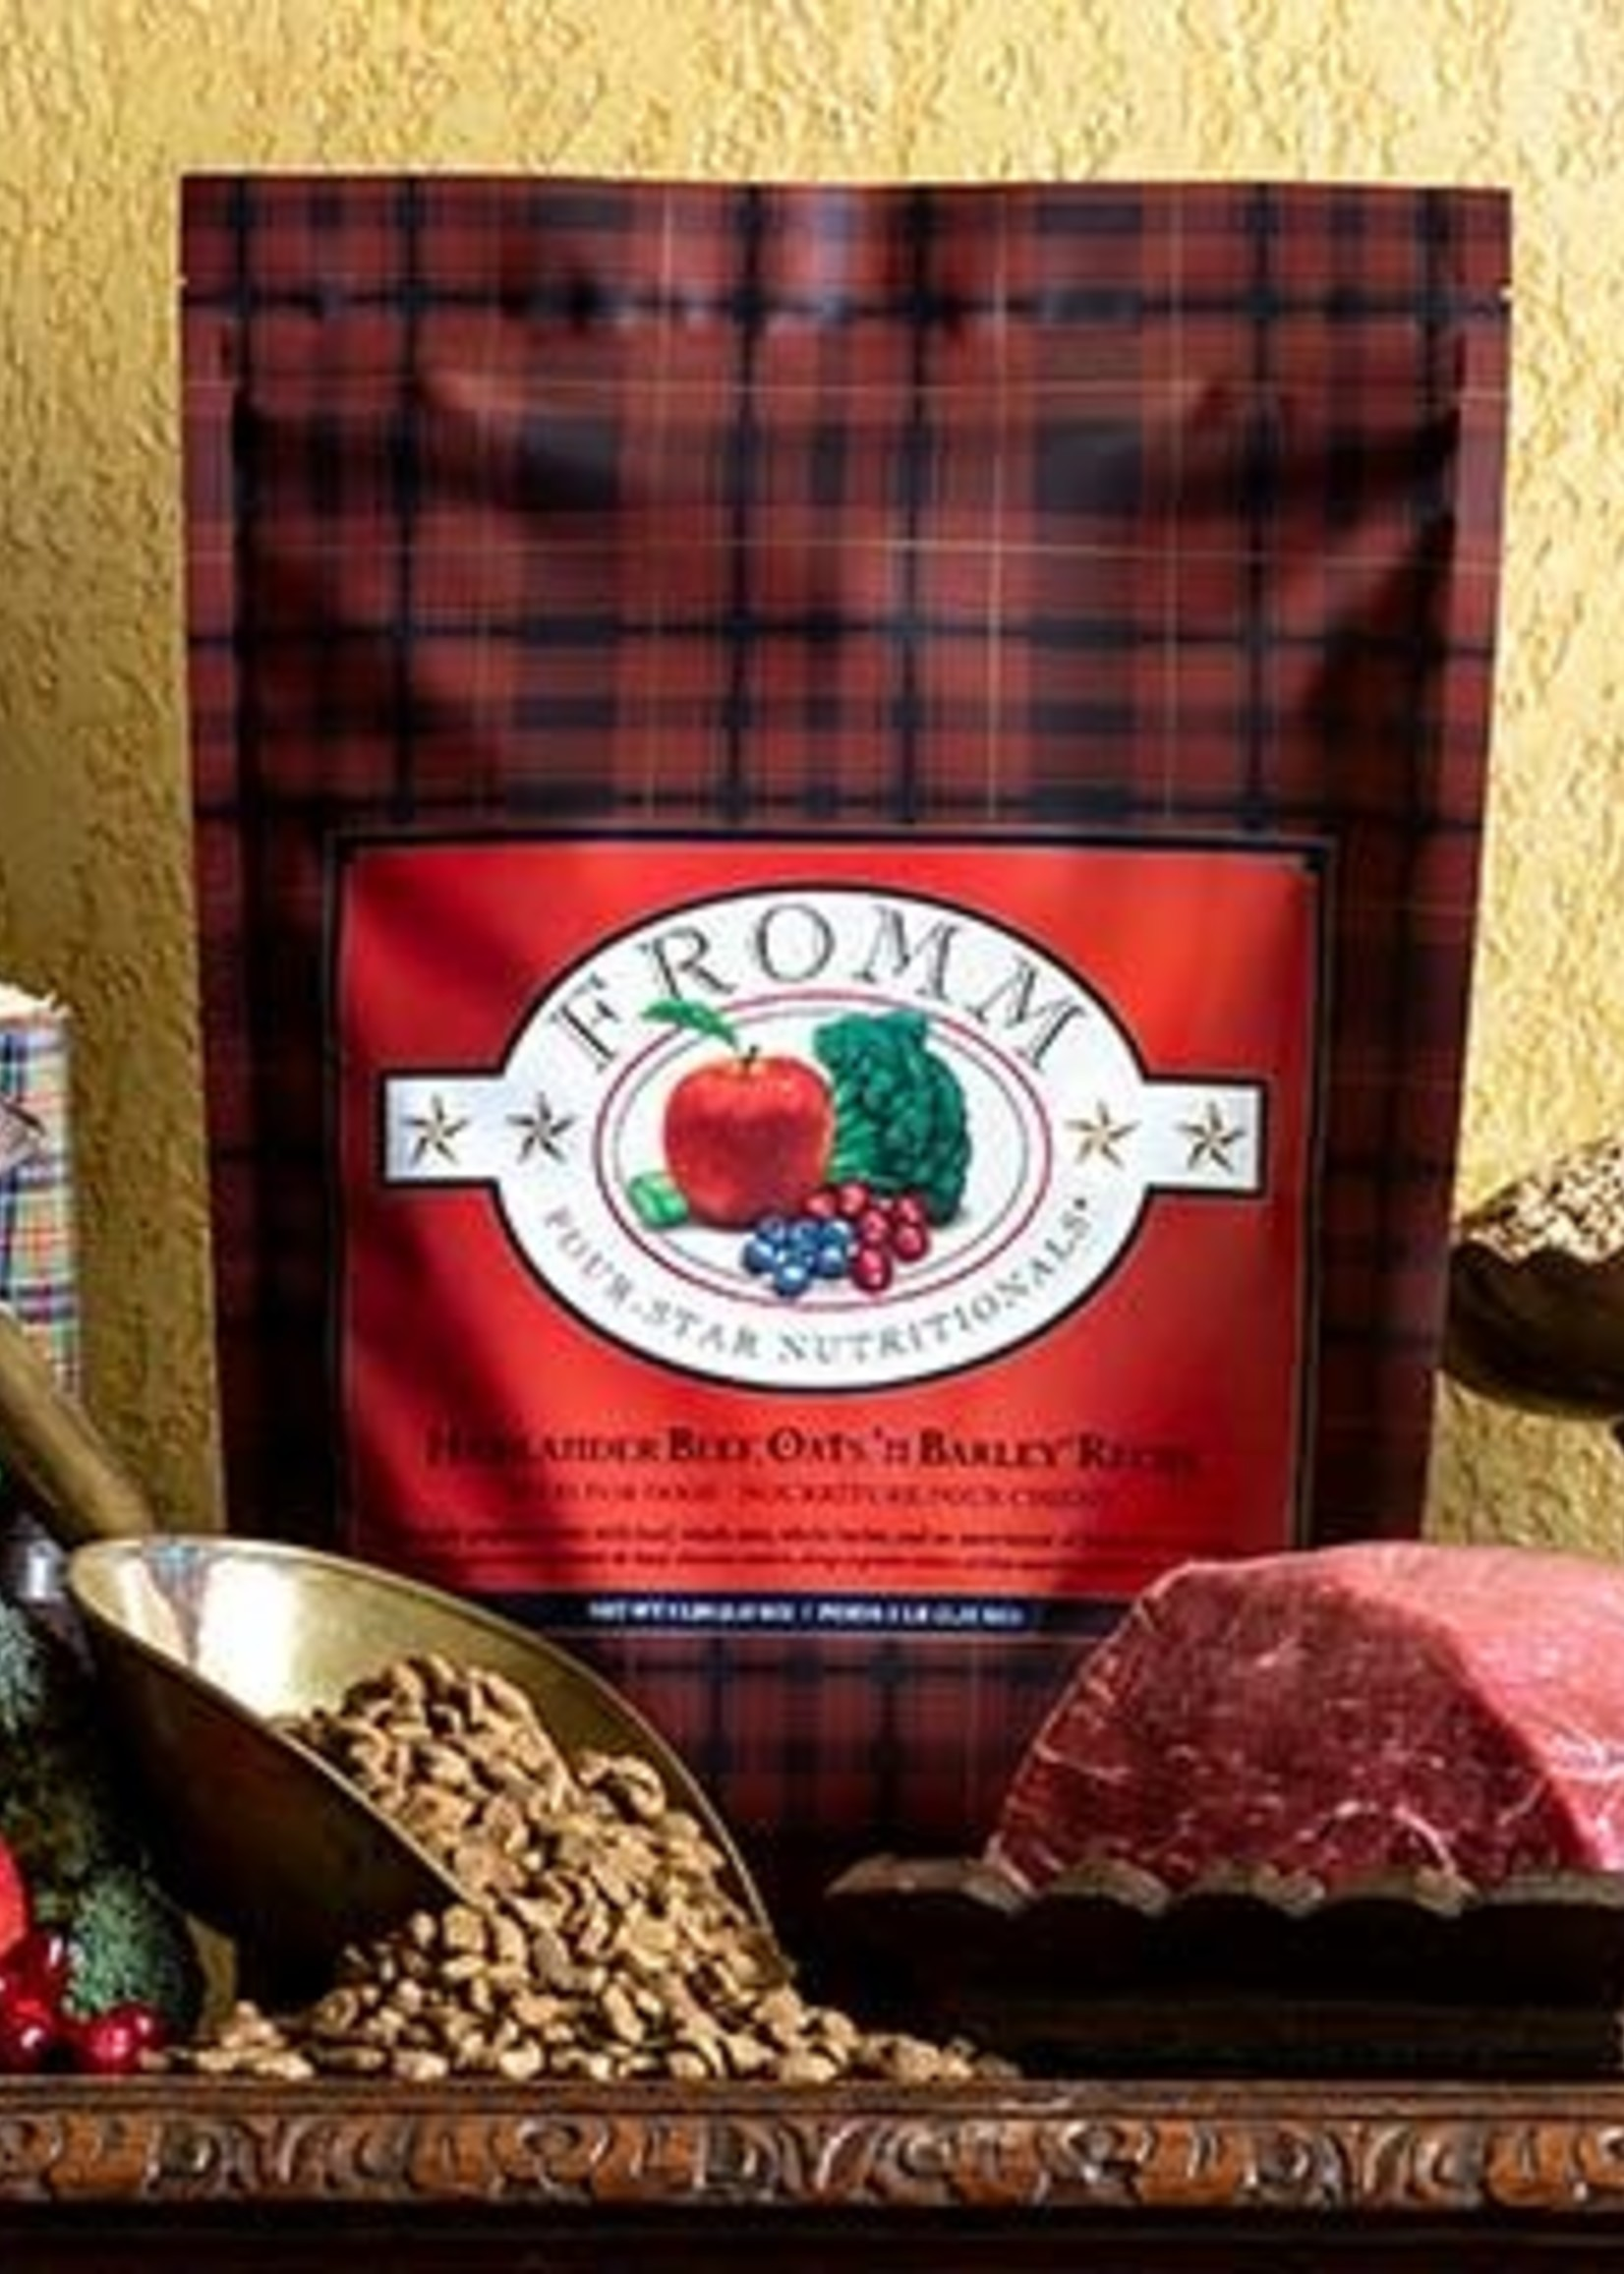 Fromm Family Foods, LLC Fromm Dog Dry 4 Star Highlander Beef, Oats, 'n Barley